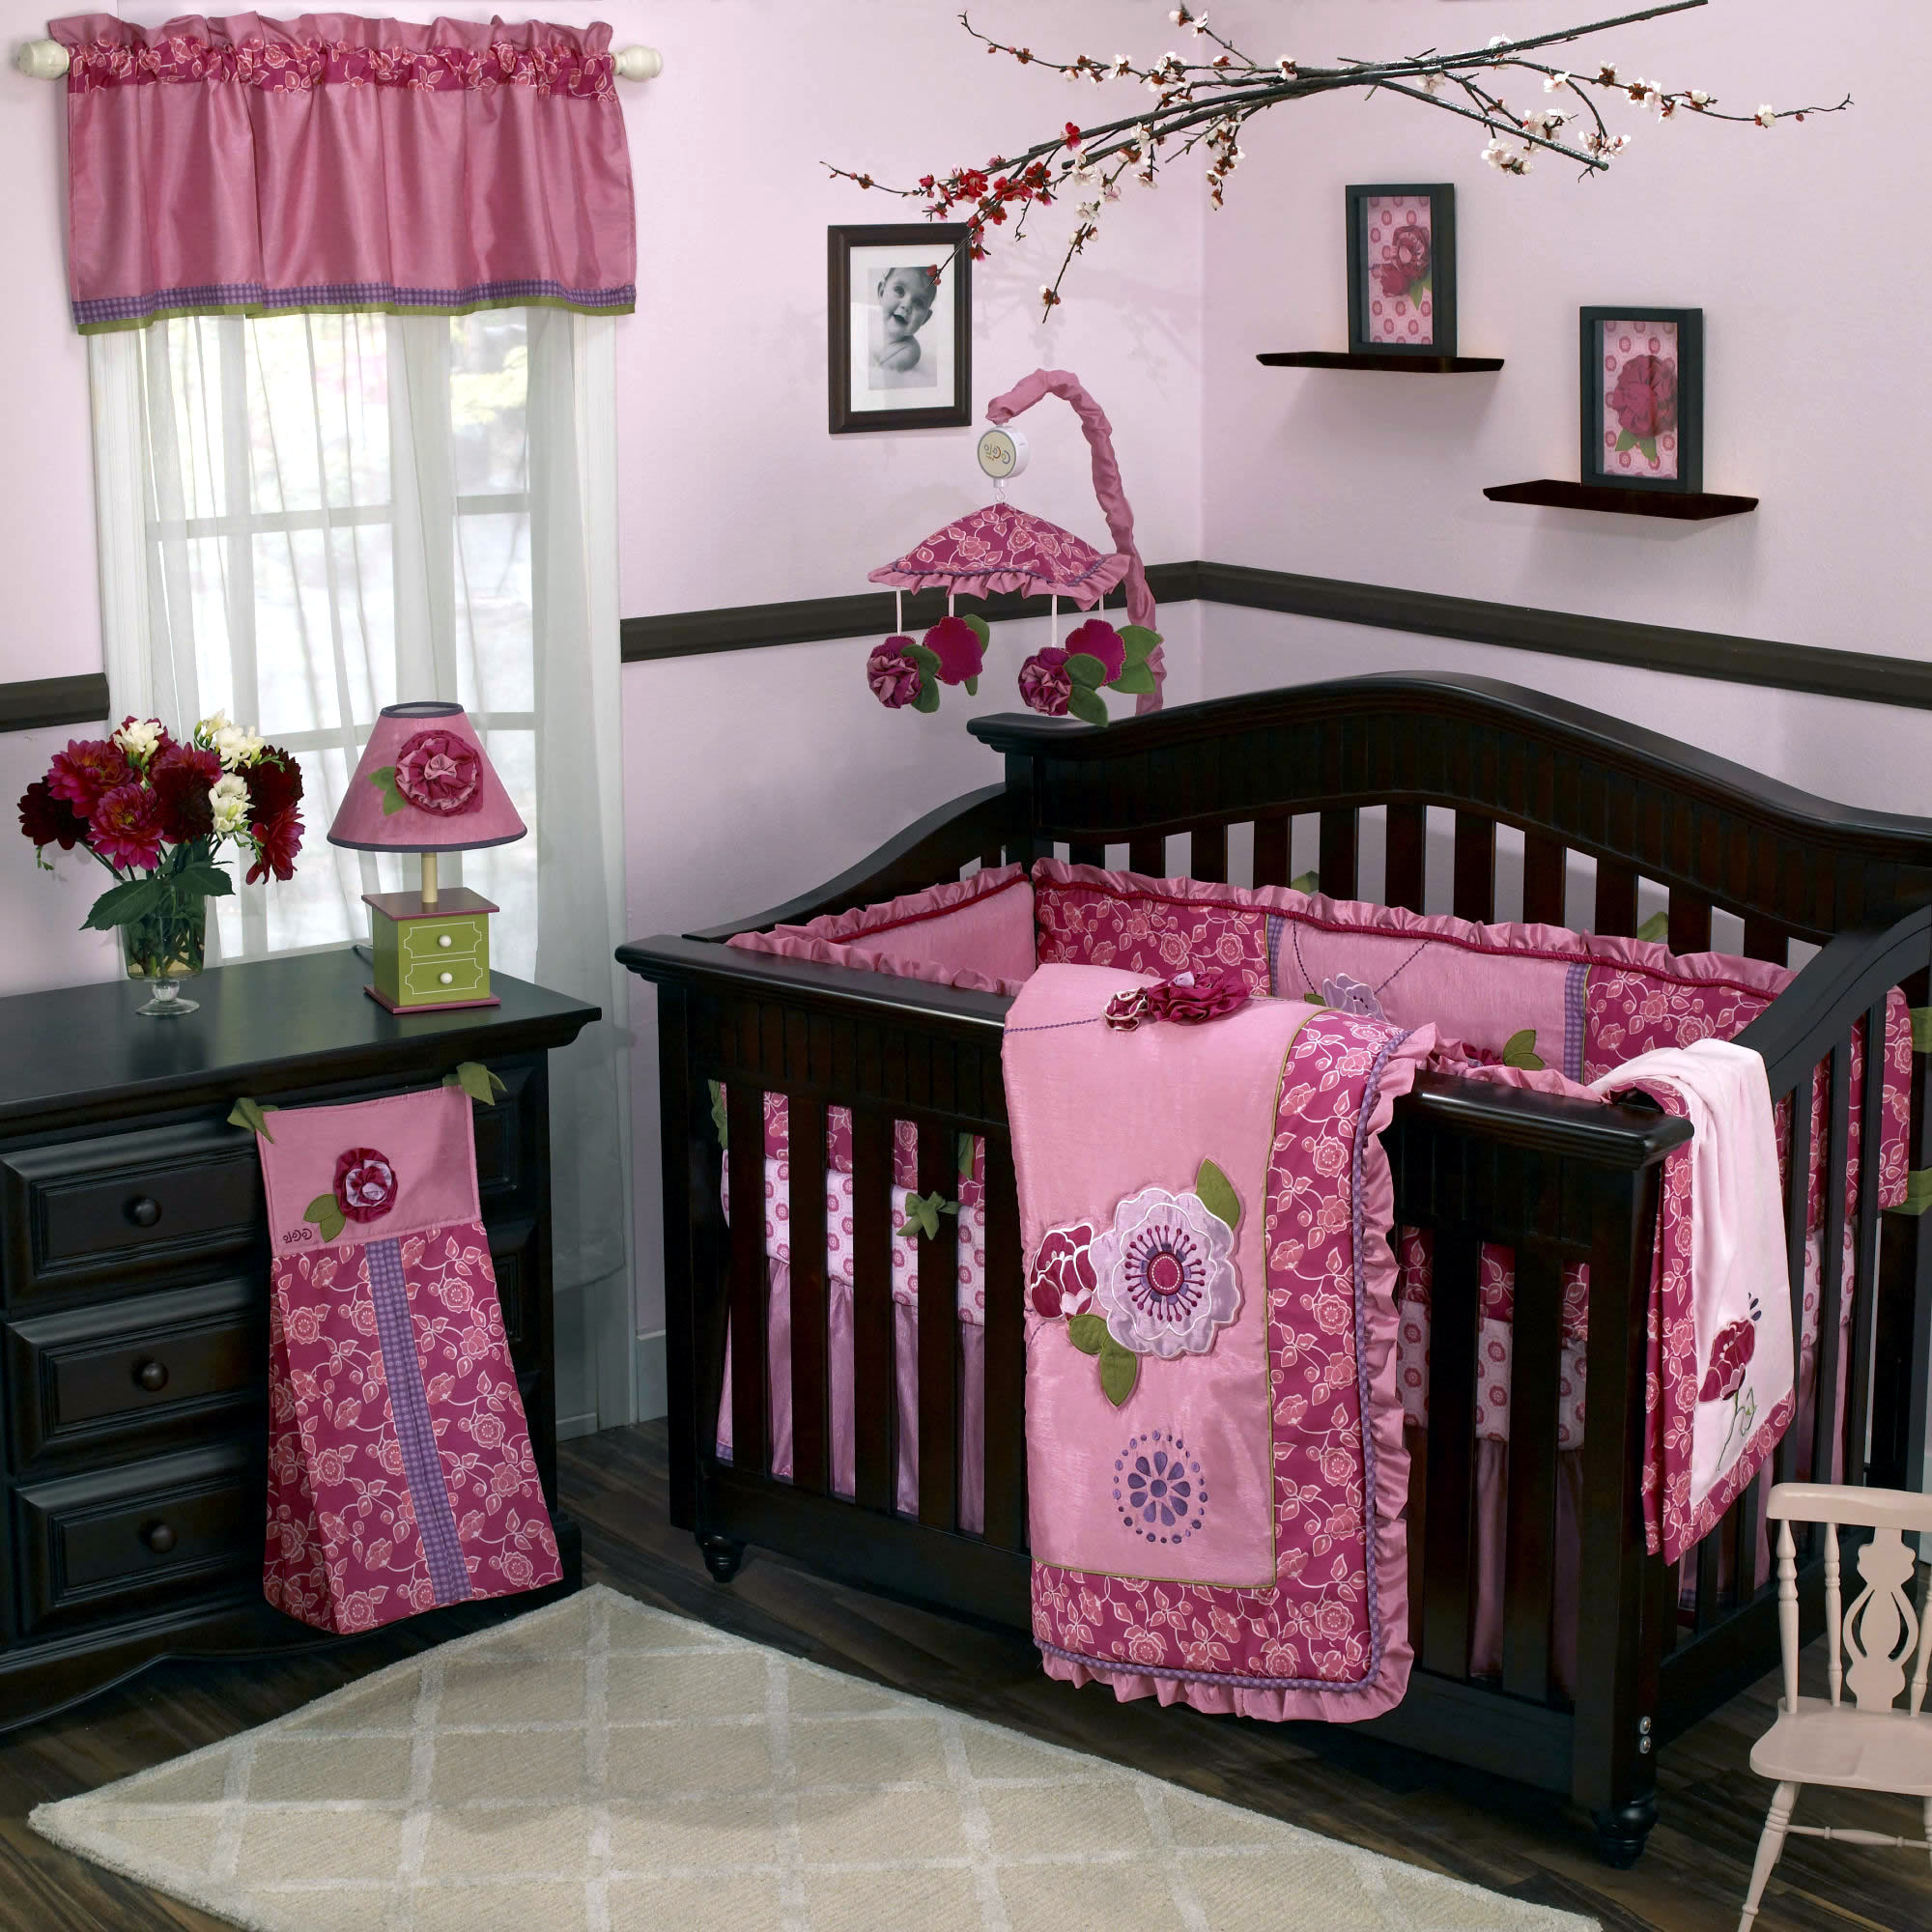 20 Best Baby Room Decor Ideas: Baby Room Ideas For Small Apartment Practical